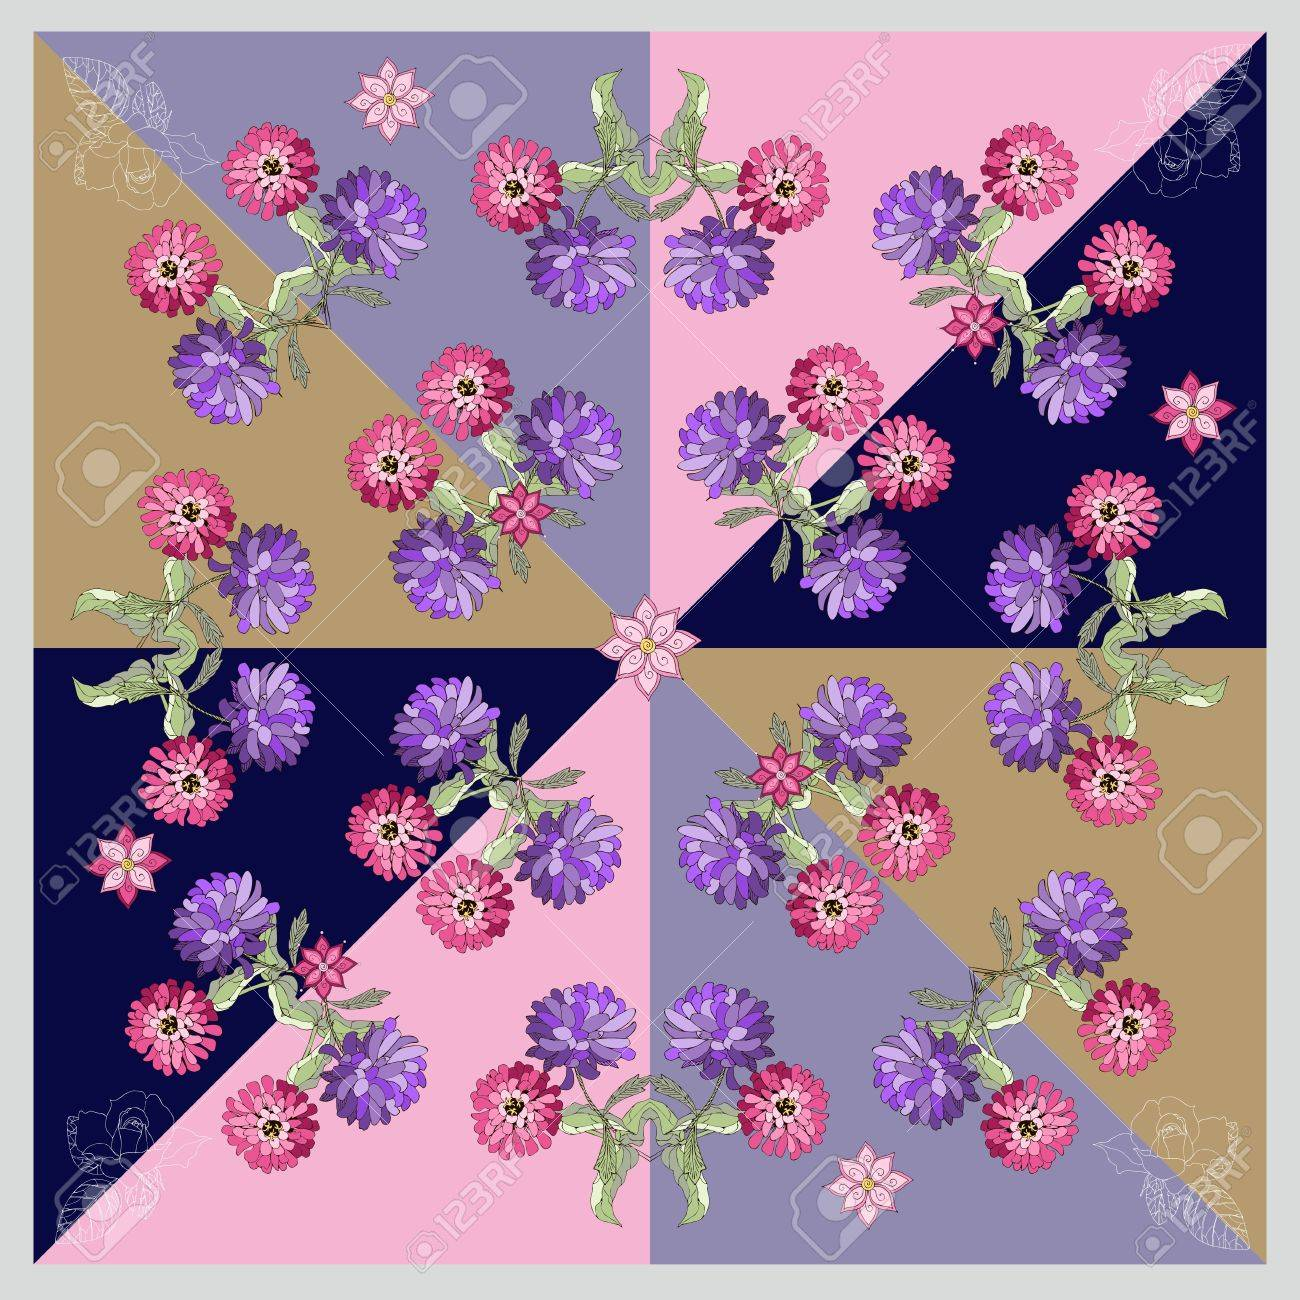 Beautiful bandana print or silk neck scarf with hand drawn flowers. Kerchief square pattern design style for print on fabric. Vector illustration - 55164270